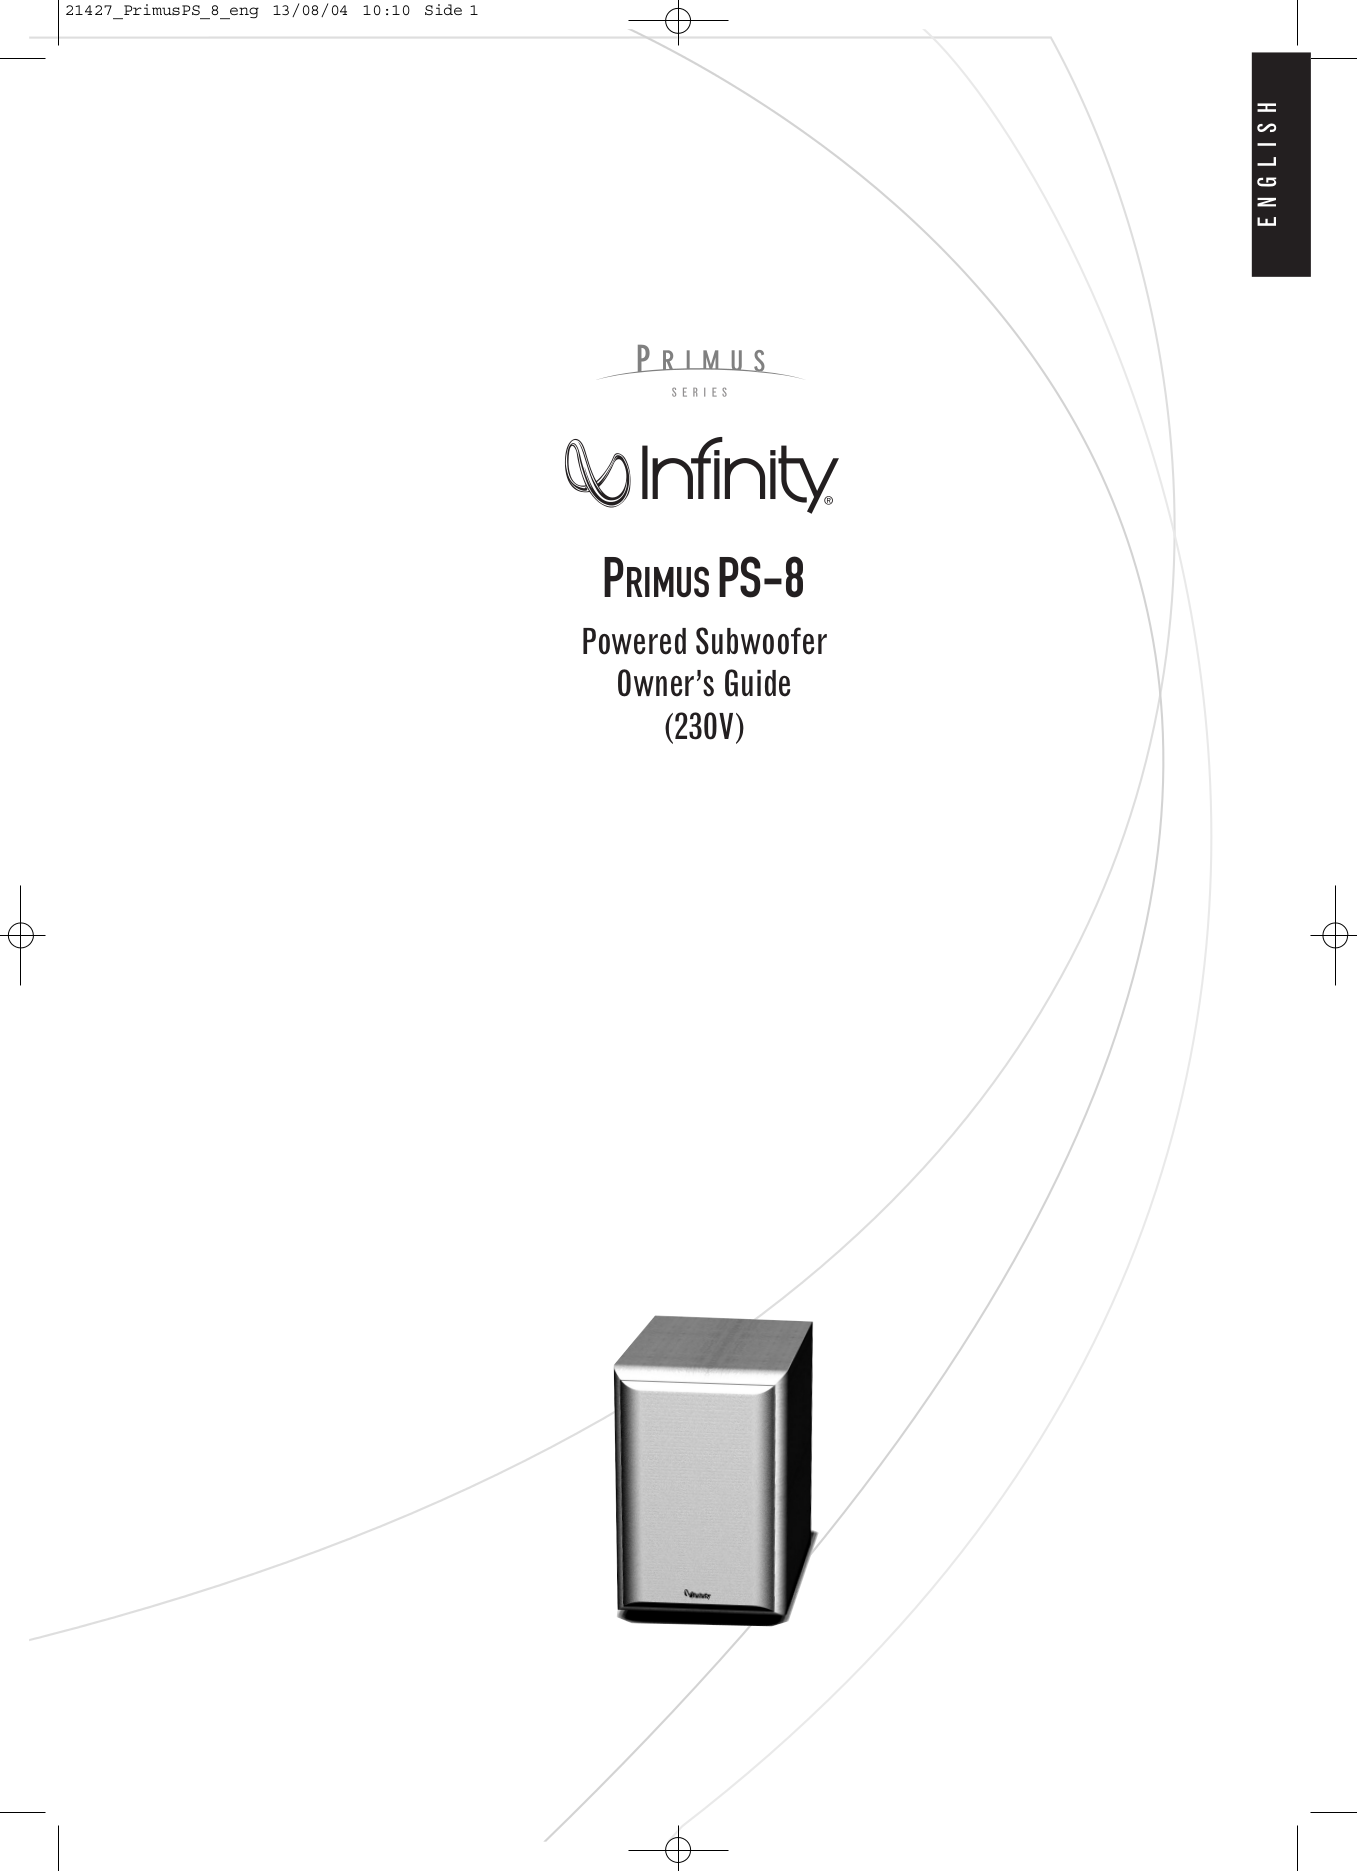 download free pdf for infinity ps 10 subwoofer manual